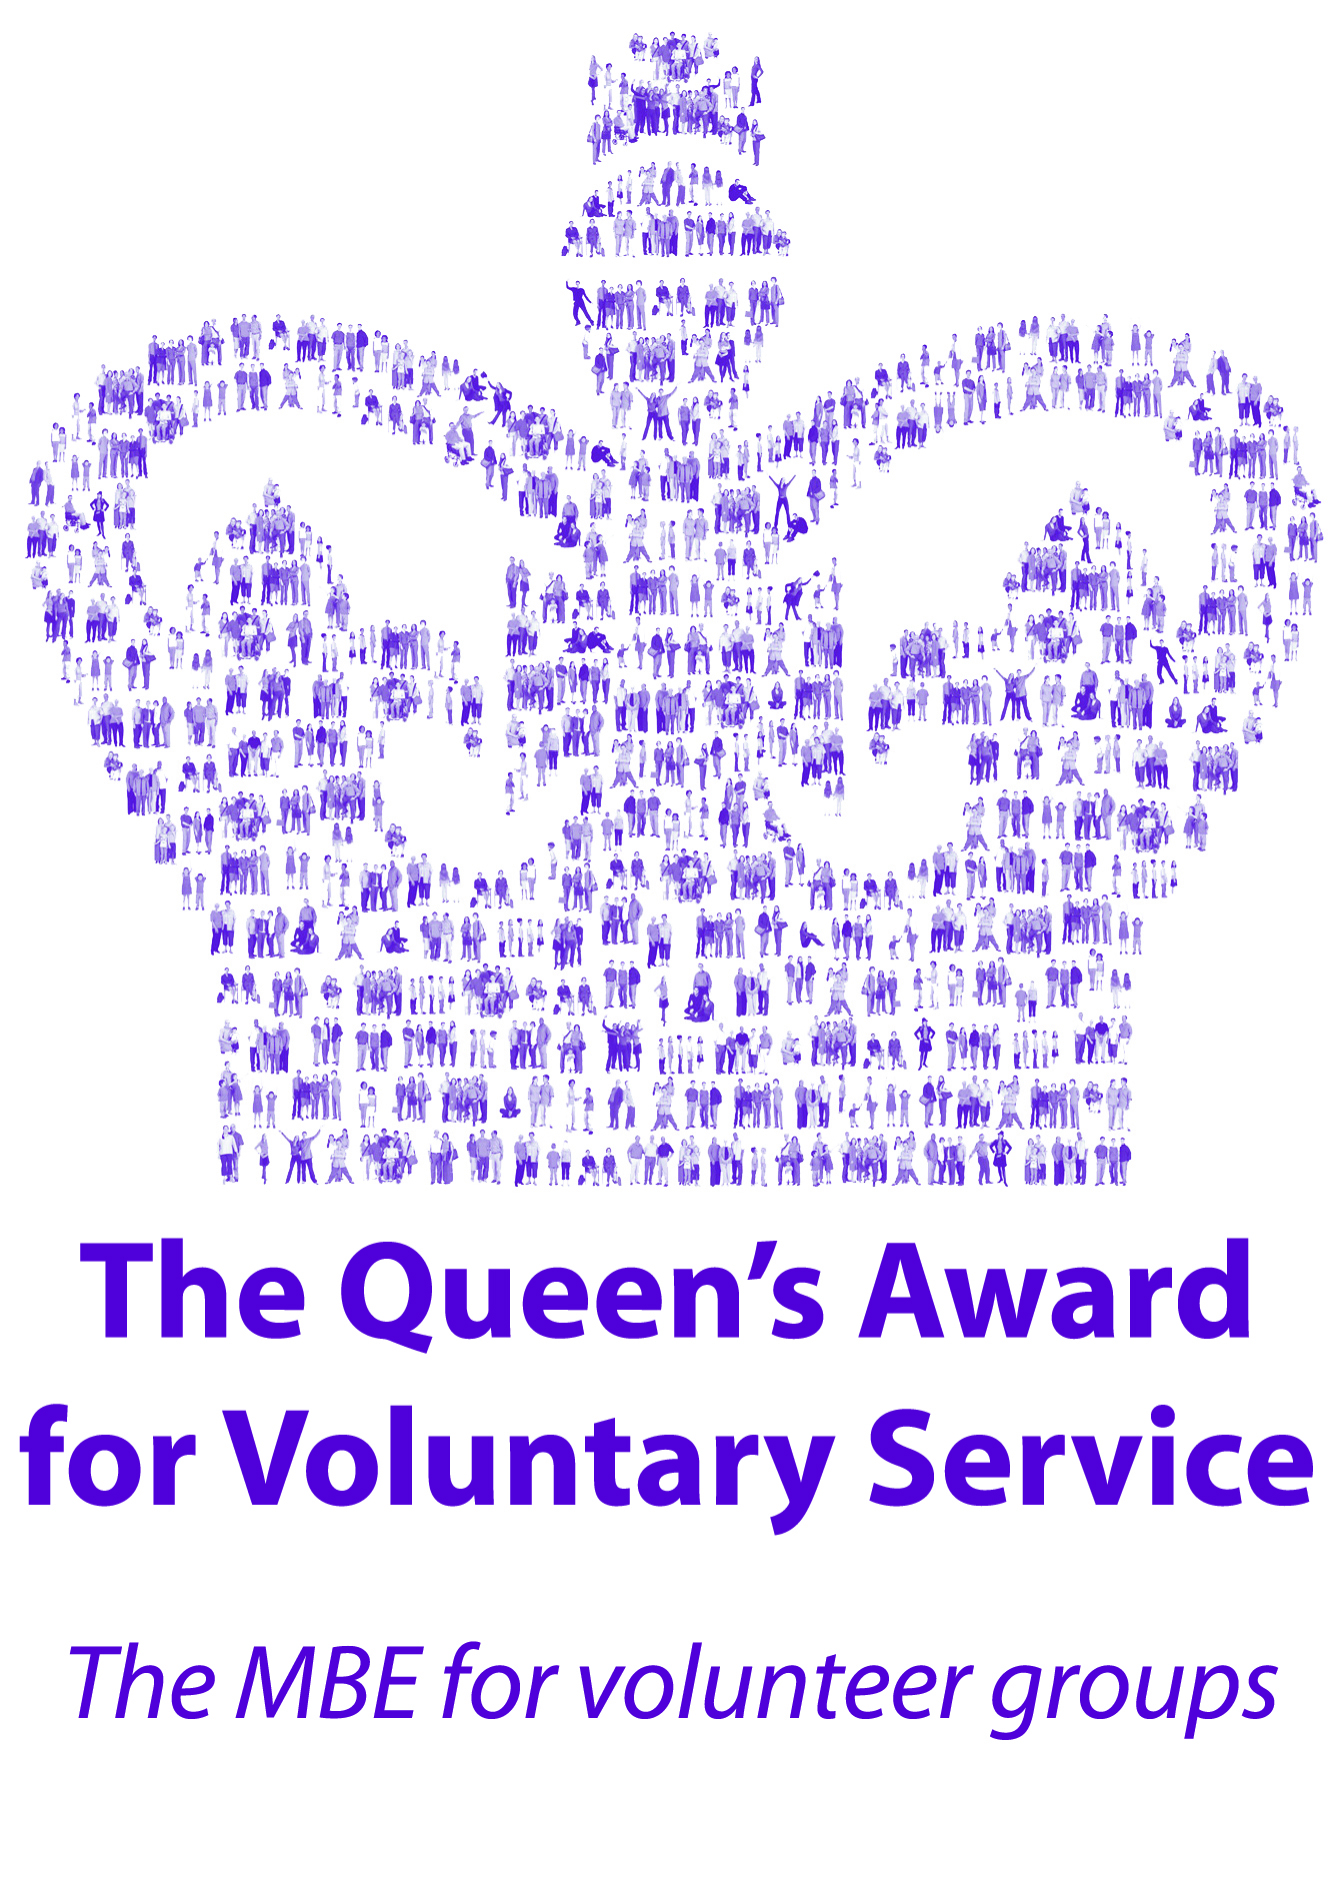 2nd June 2017 - For all the the hard work and dedication of our wonderful volunteers, DACT received it's most prestigious award yet.